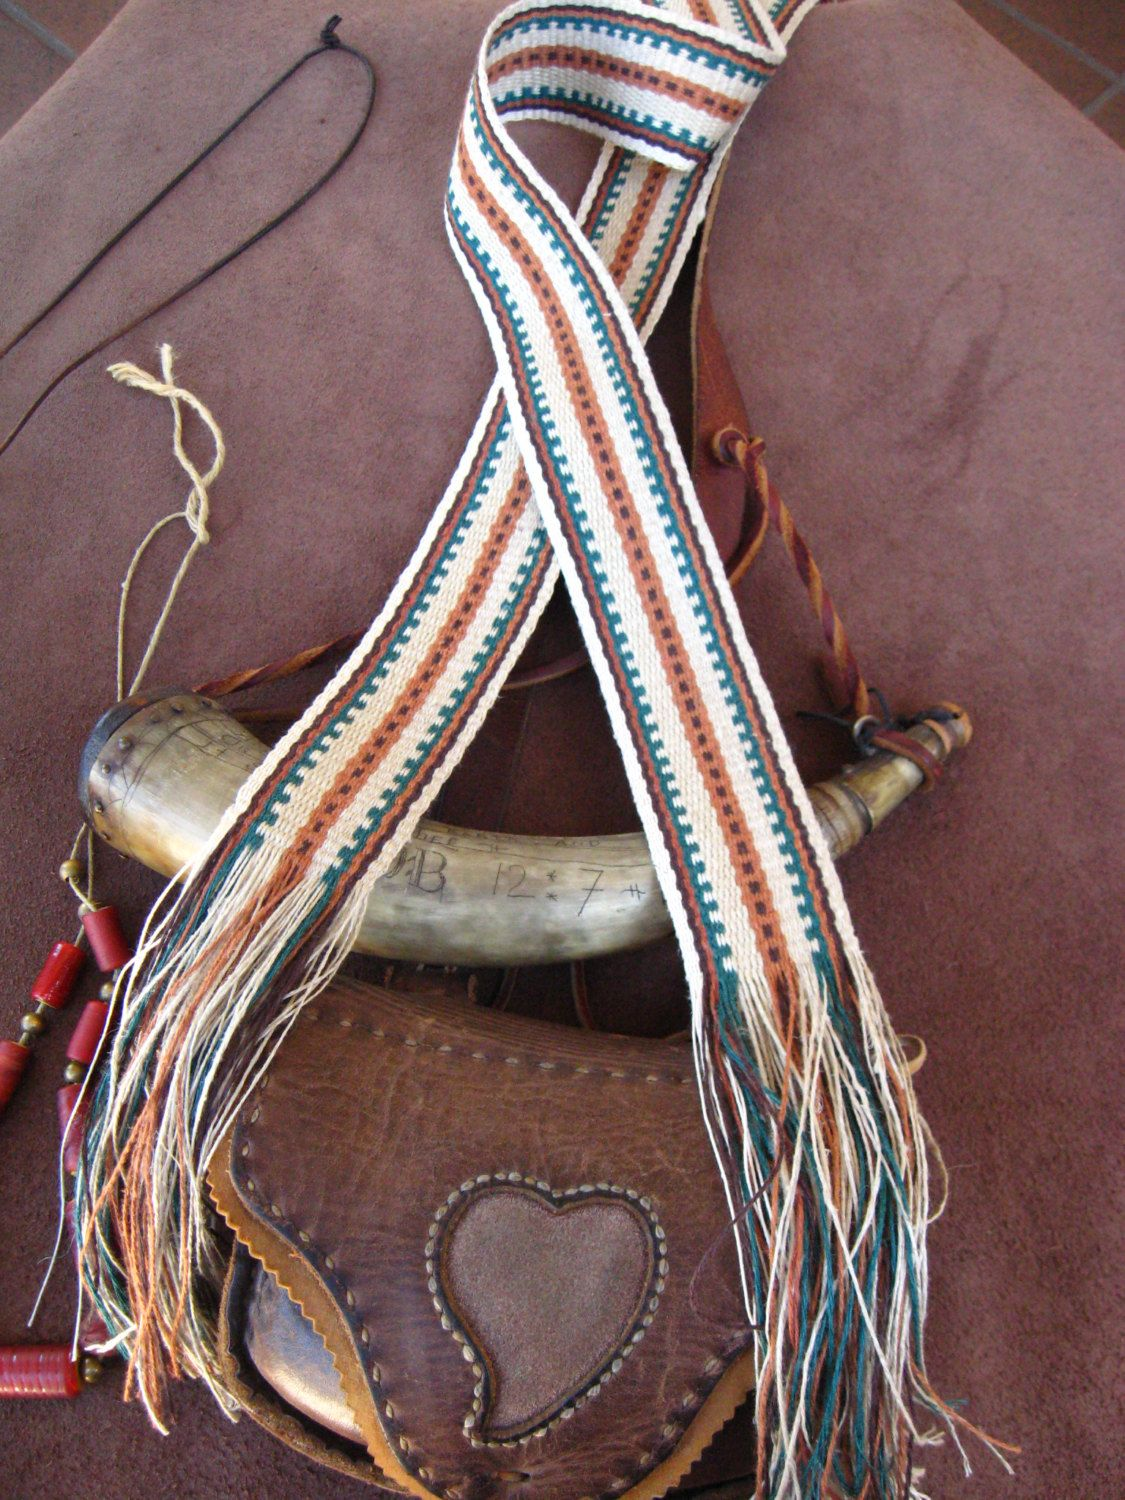 For Sale: $40  Handwoven Hemp Strap for Powder Horn, Quiver